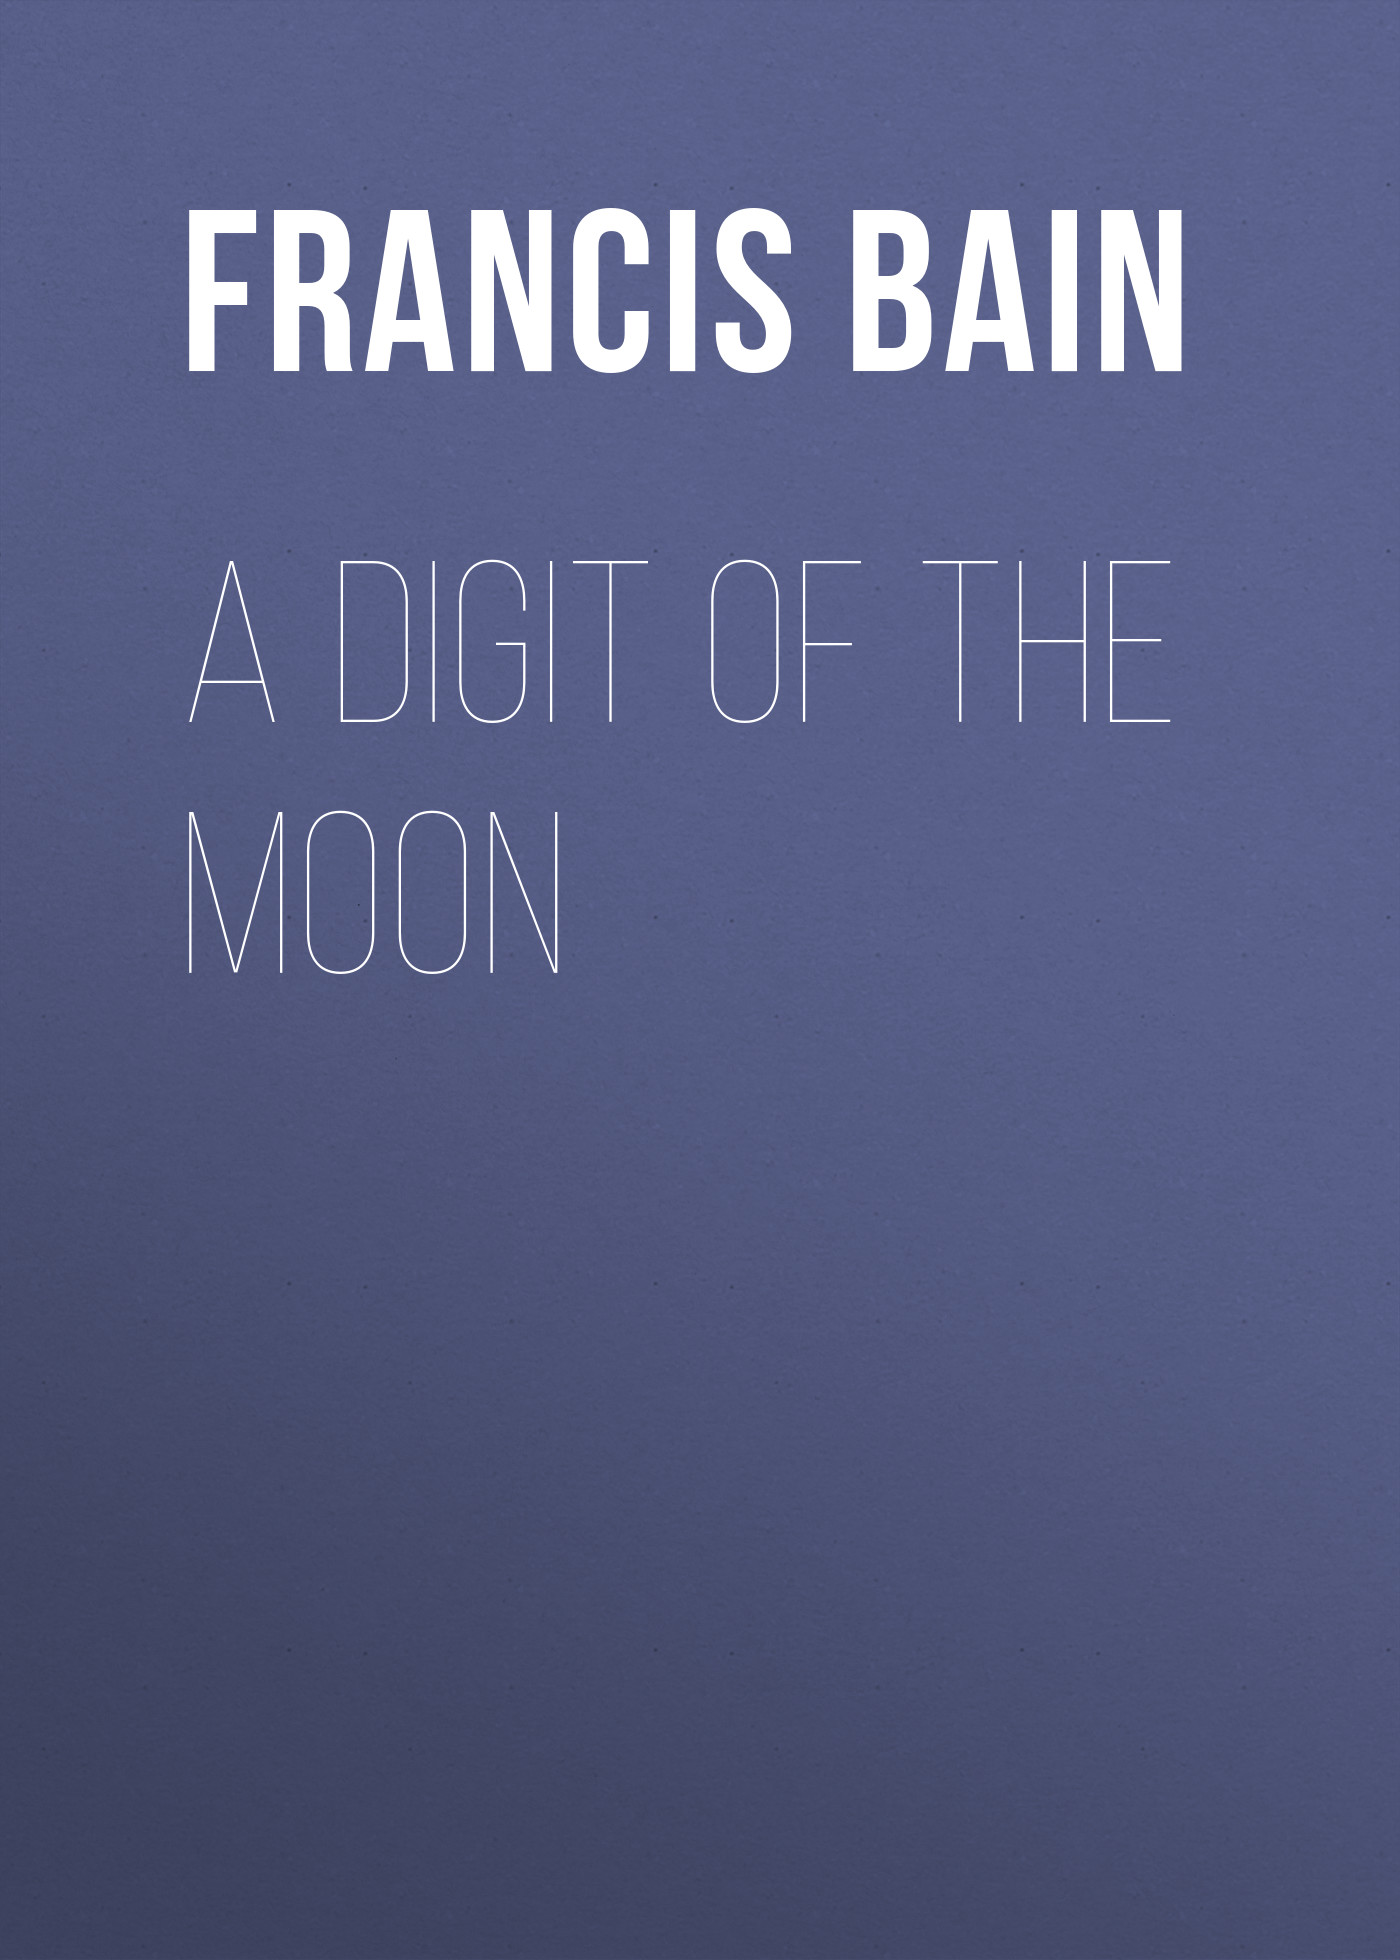 Bain Francis William A Digit of the Moon